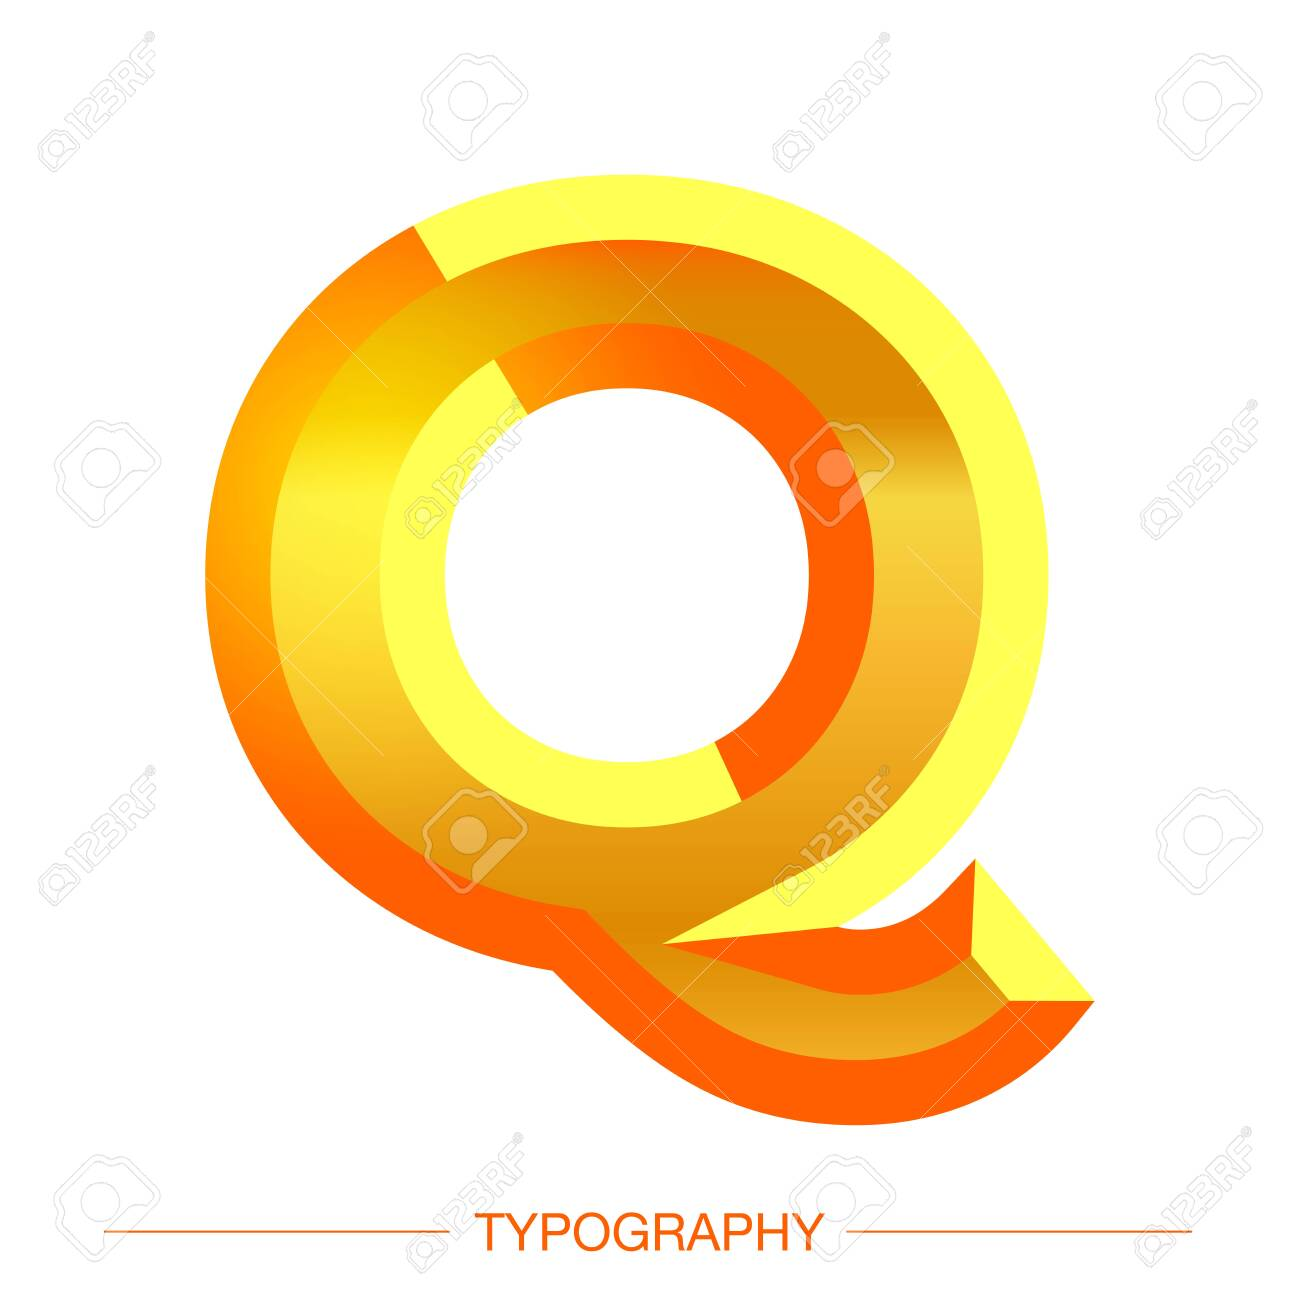 Vector 3D Sunshine letter bold style modern typography for decoration, logo, poster, t shirt, book, card, sale banner, printing on fabric, industrial - 152070644